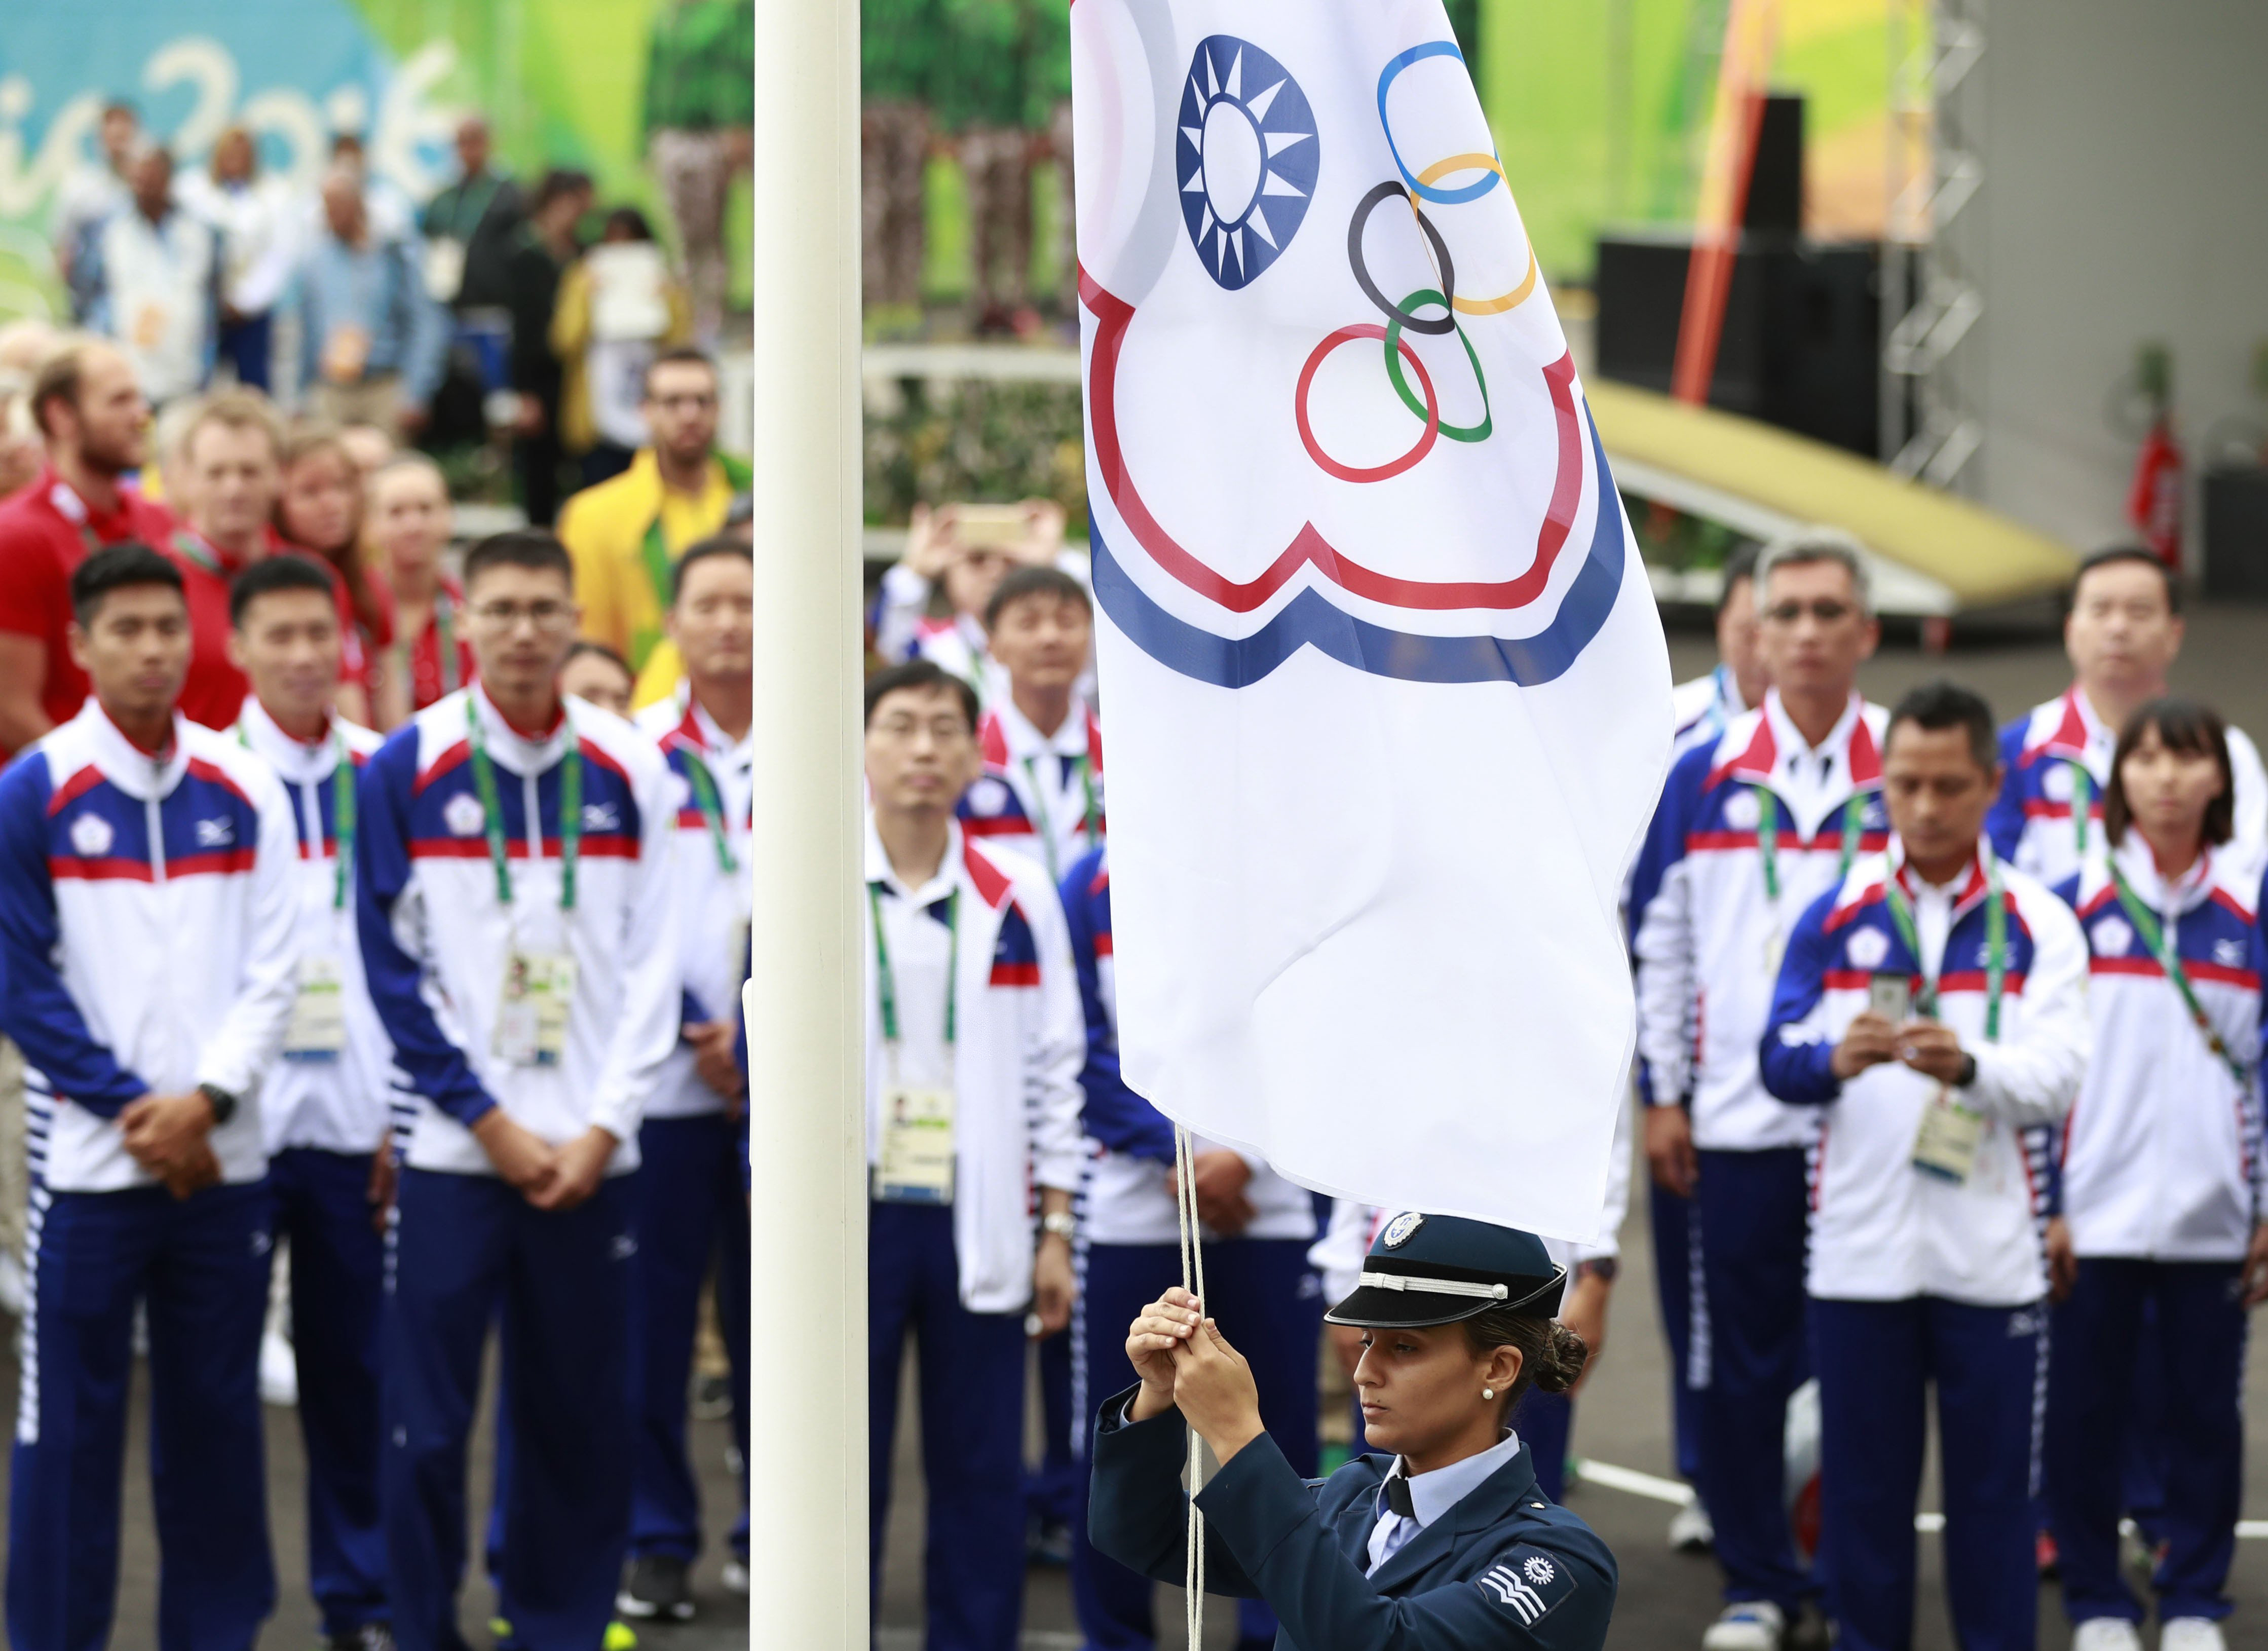 The Taiwanese delegation to the Rio 2016 Olympic Games, competing as Chinese Taipei,  attends the flag-raising ceremony at the Olympic Village in Rio de Janeiro on Aug. 3, 2016